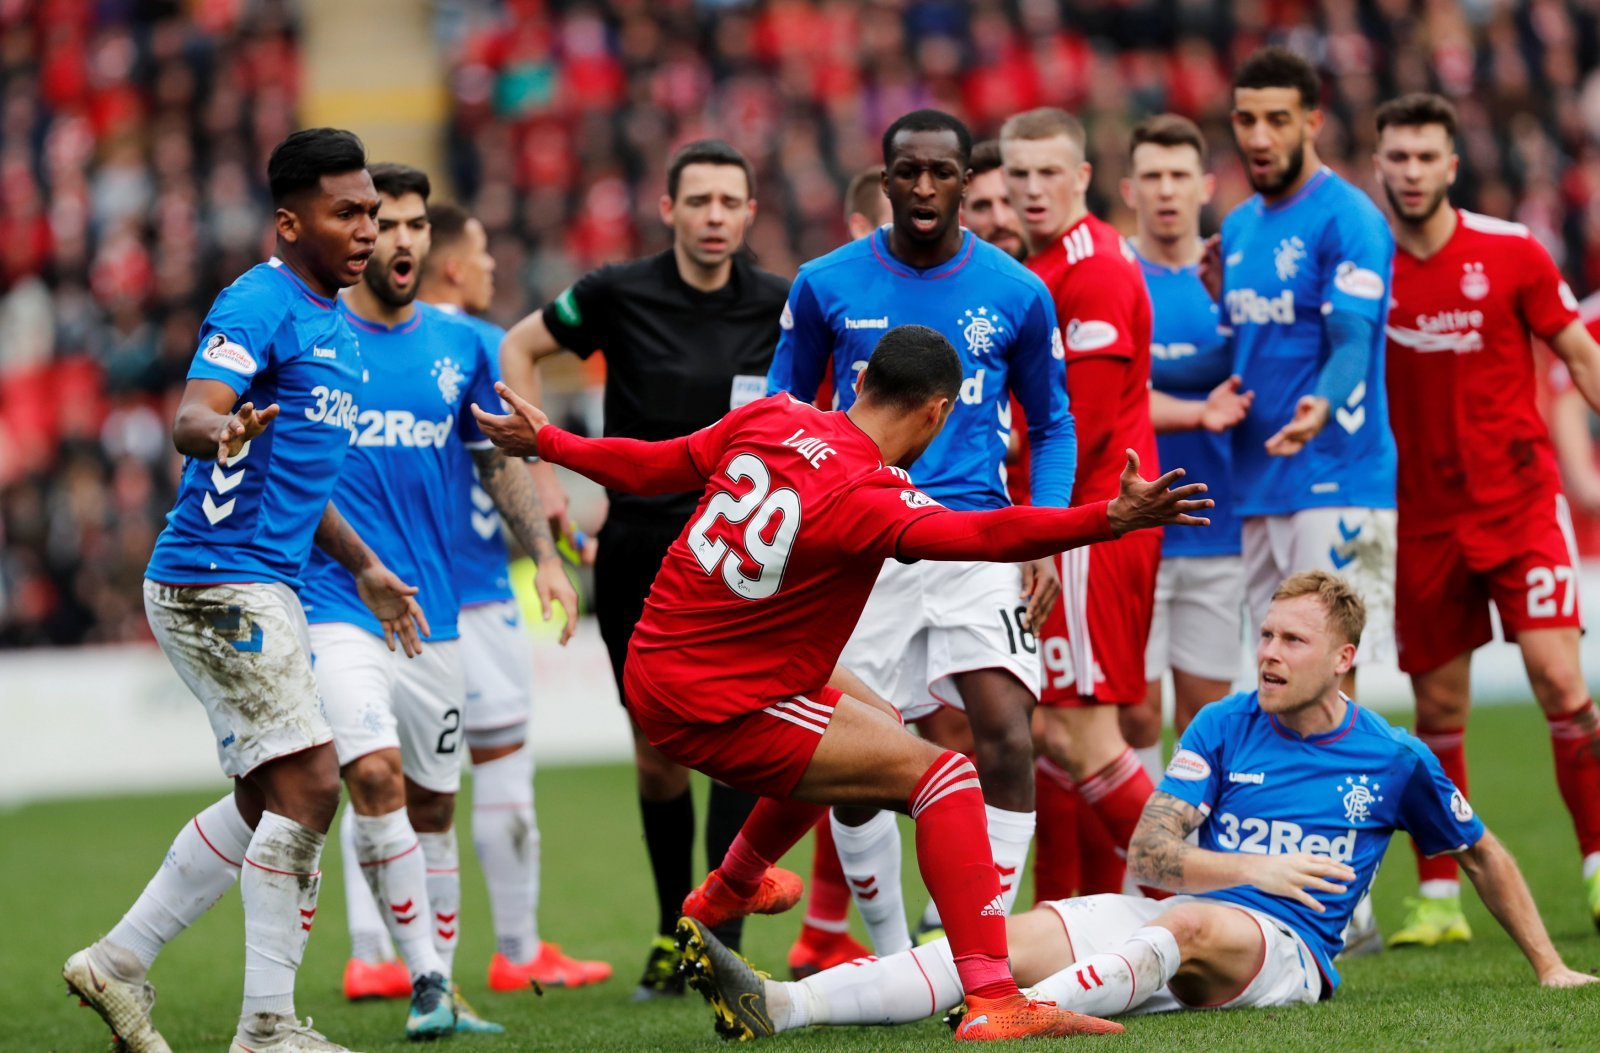 Celtic: Swooping for left-back Max Lowe can kill two birds with one stone